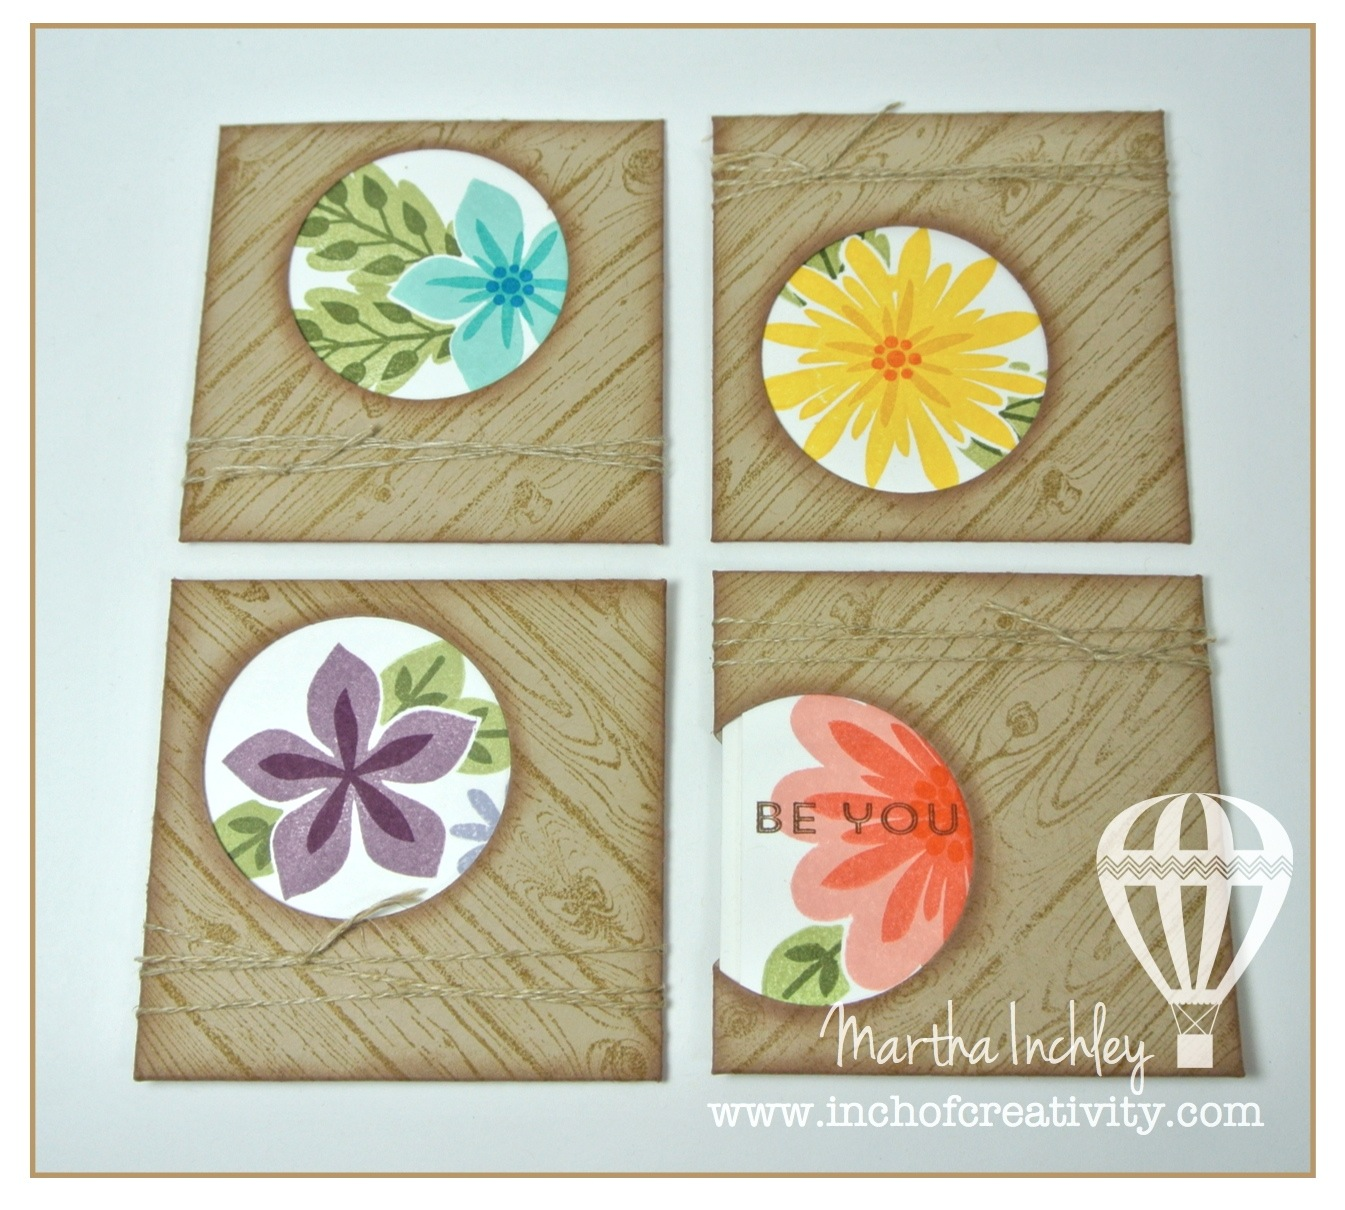 Inch of Creativity Flower Patch Card Set